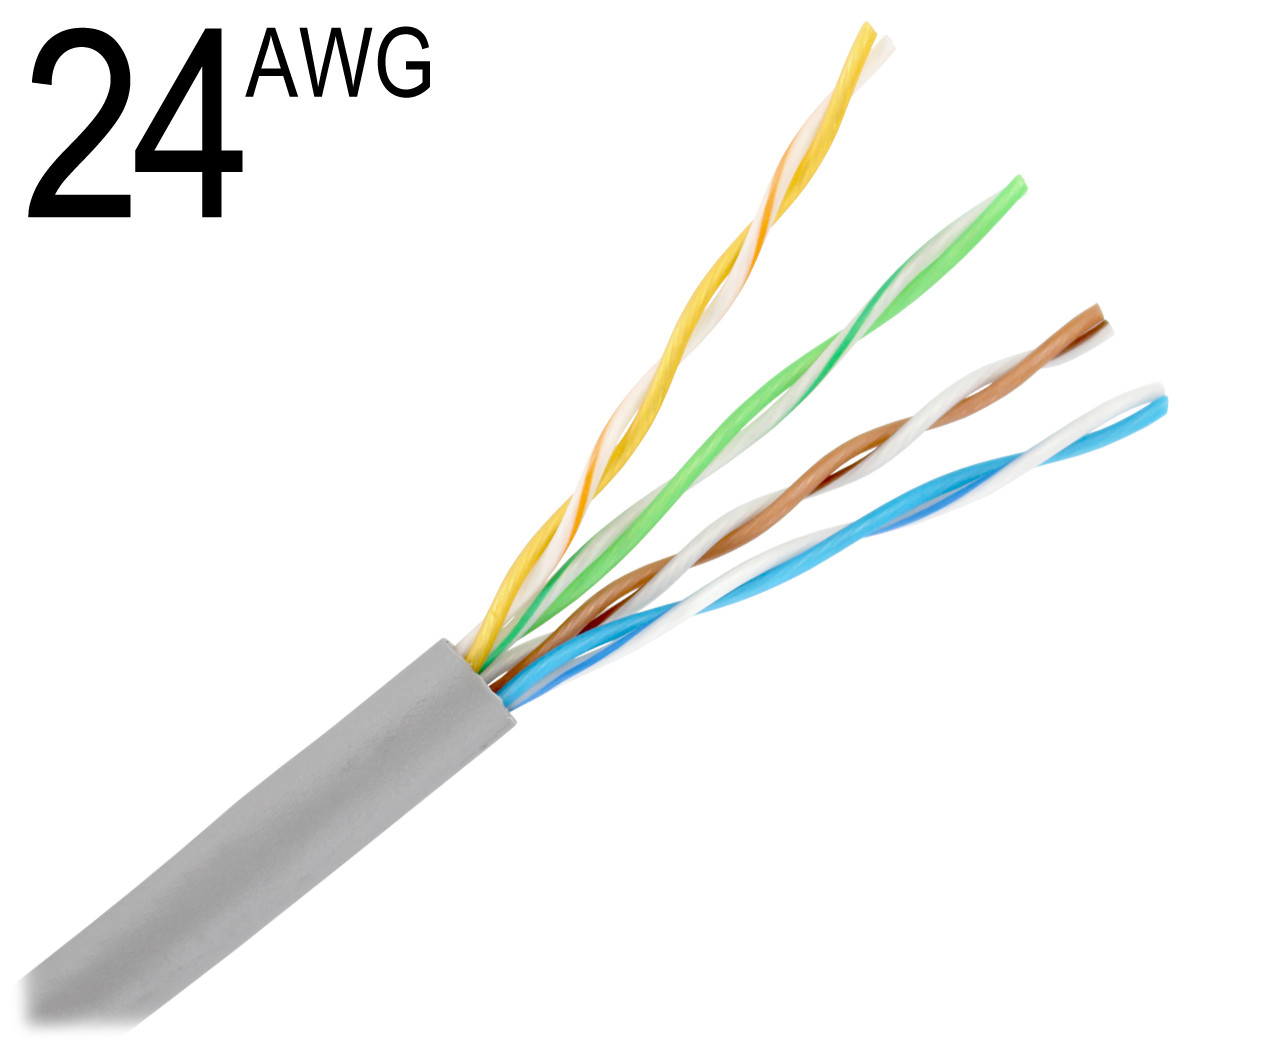 24 Gauge Stranded Electrical Wire - WIRE Center •